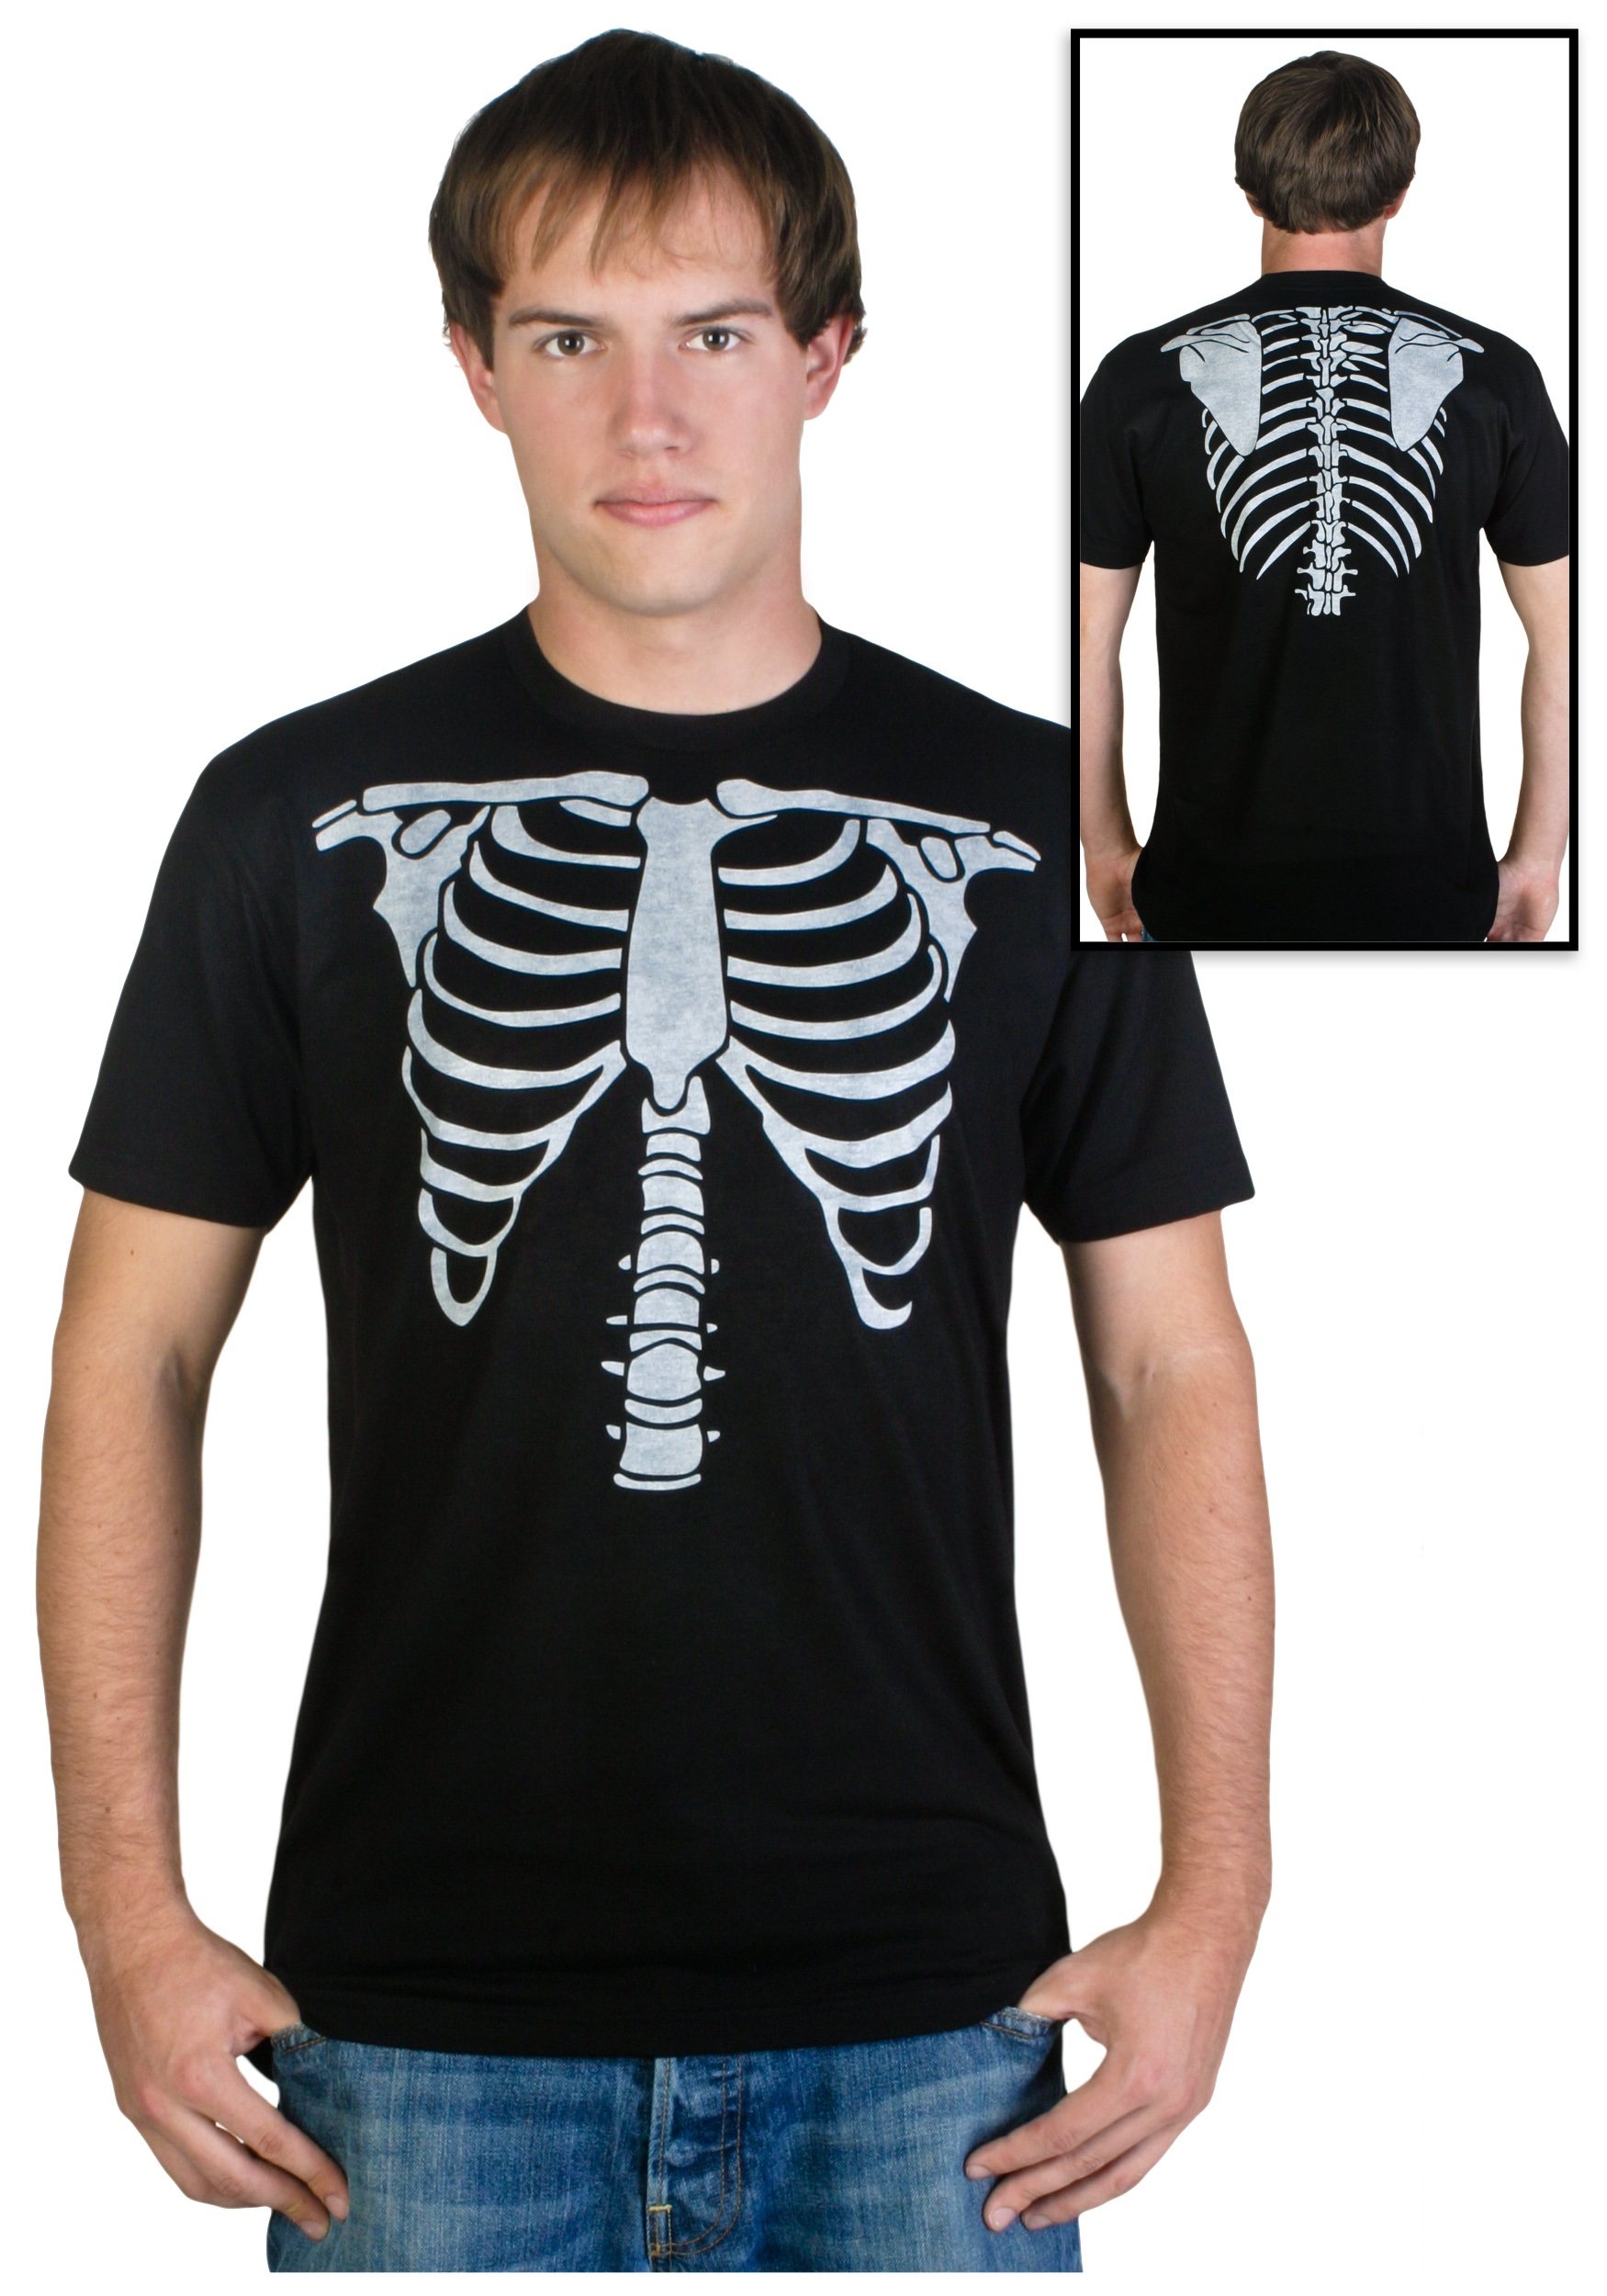 Mens skeleton costume t shirt for Costume t shirts online